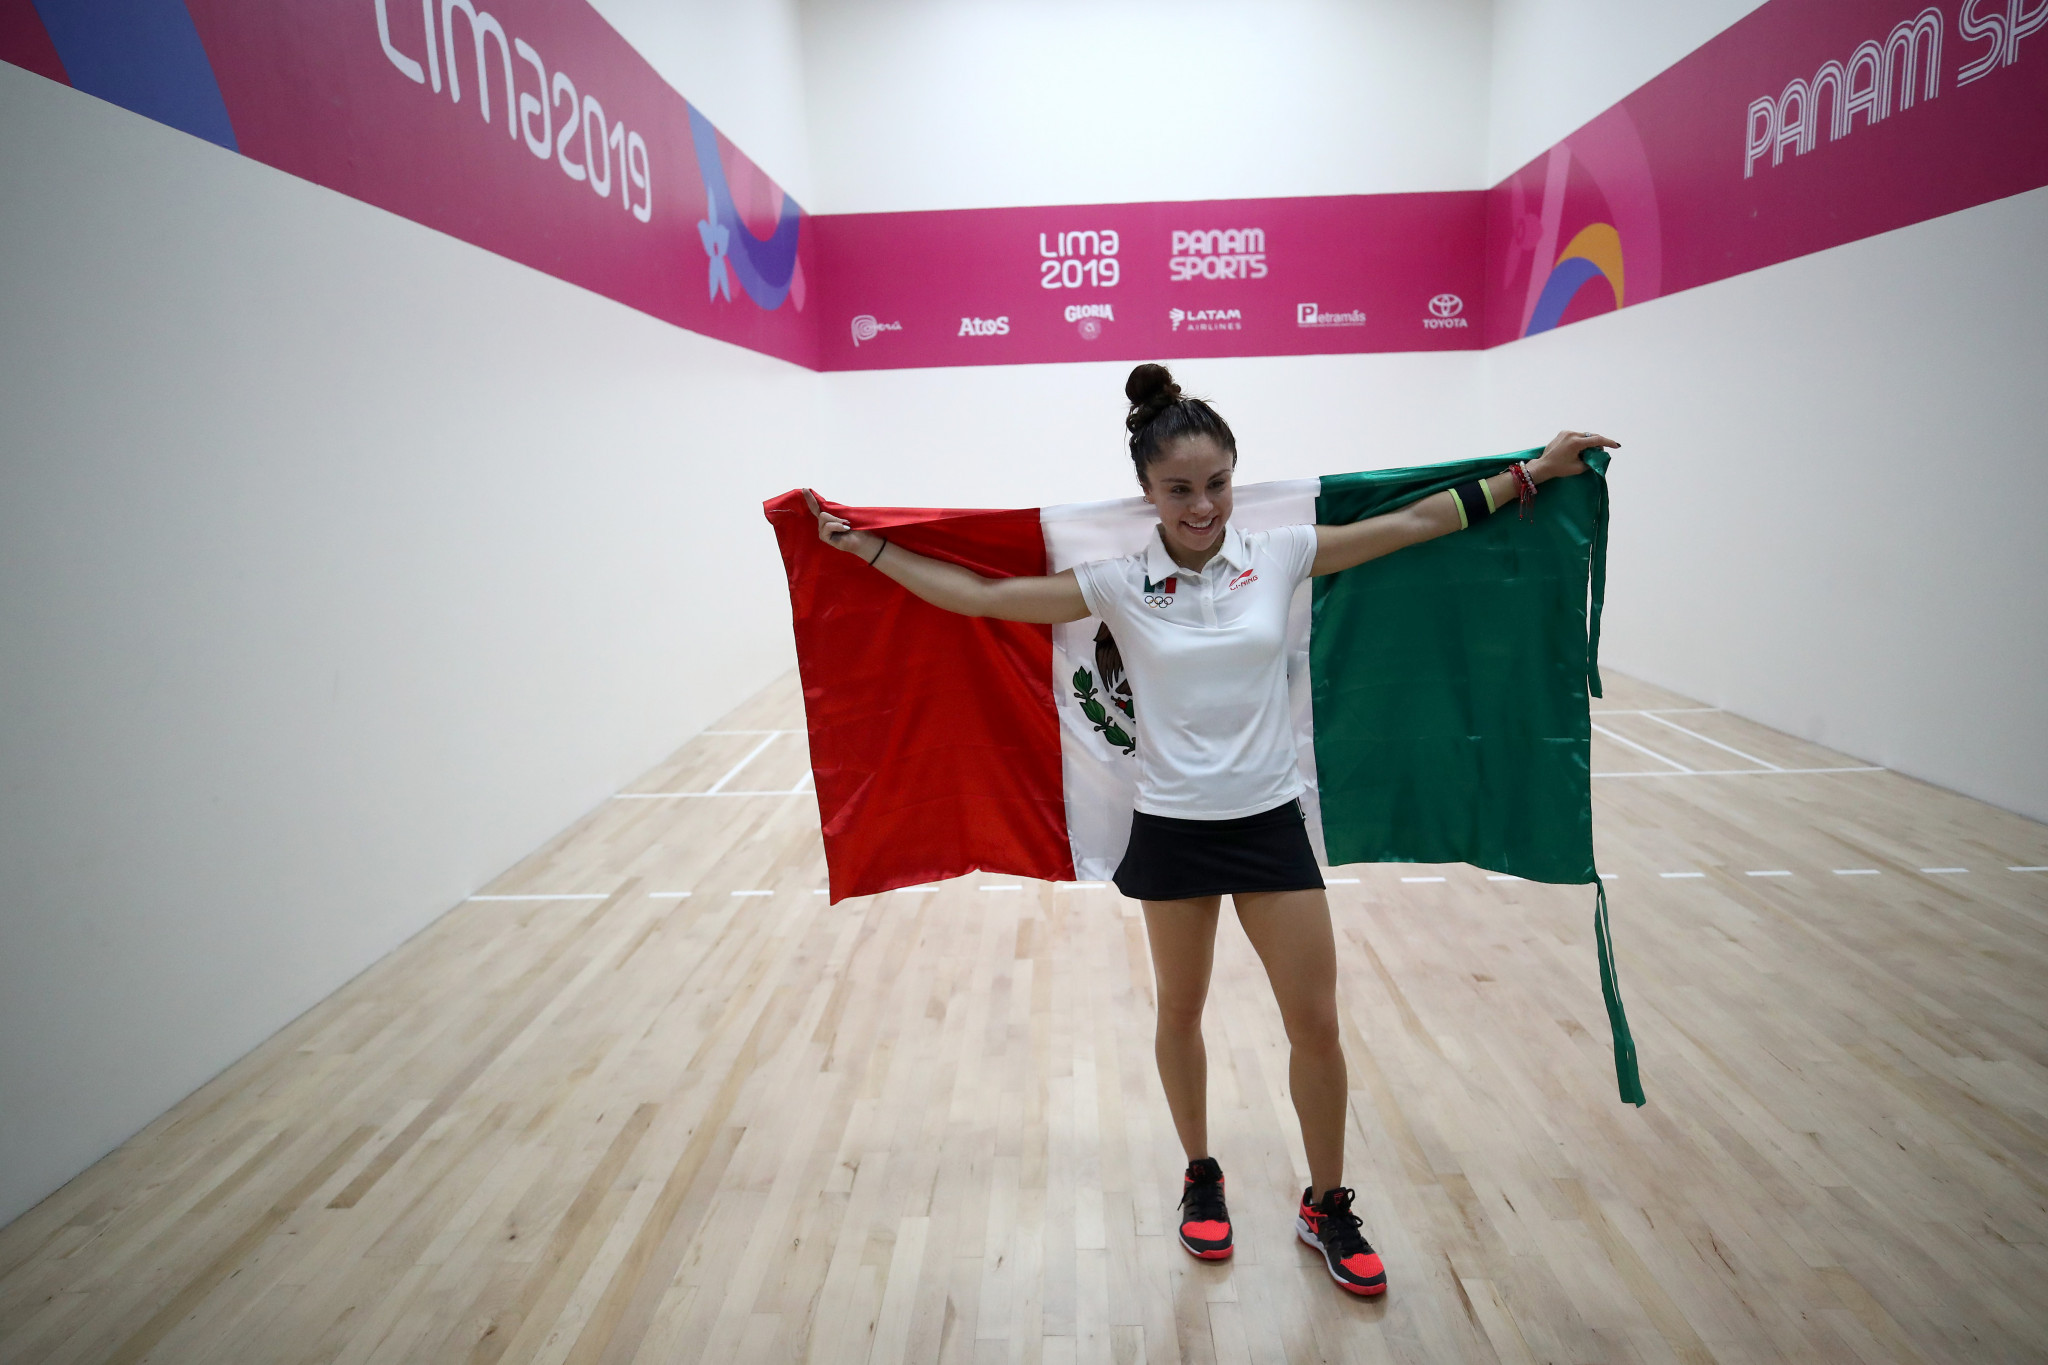 Nine-times Pan American Games gold medallist Longoria elected to Panam Sports Athlete Commission